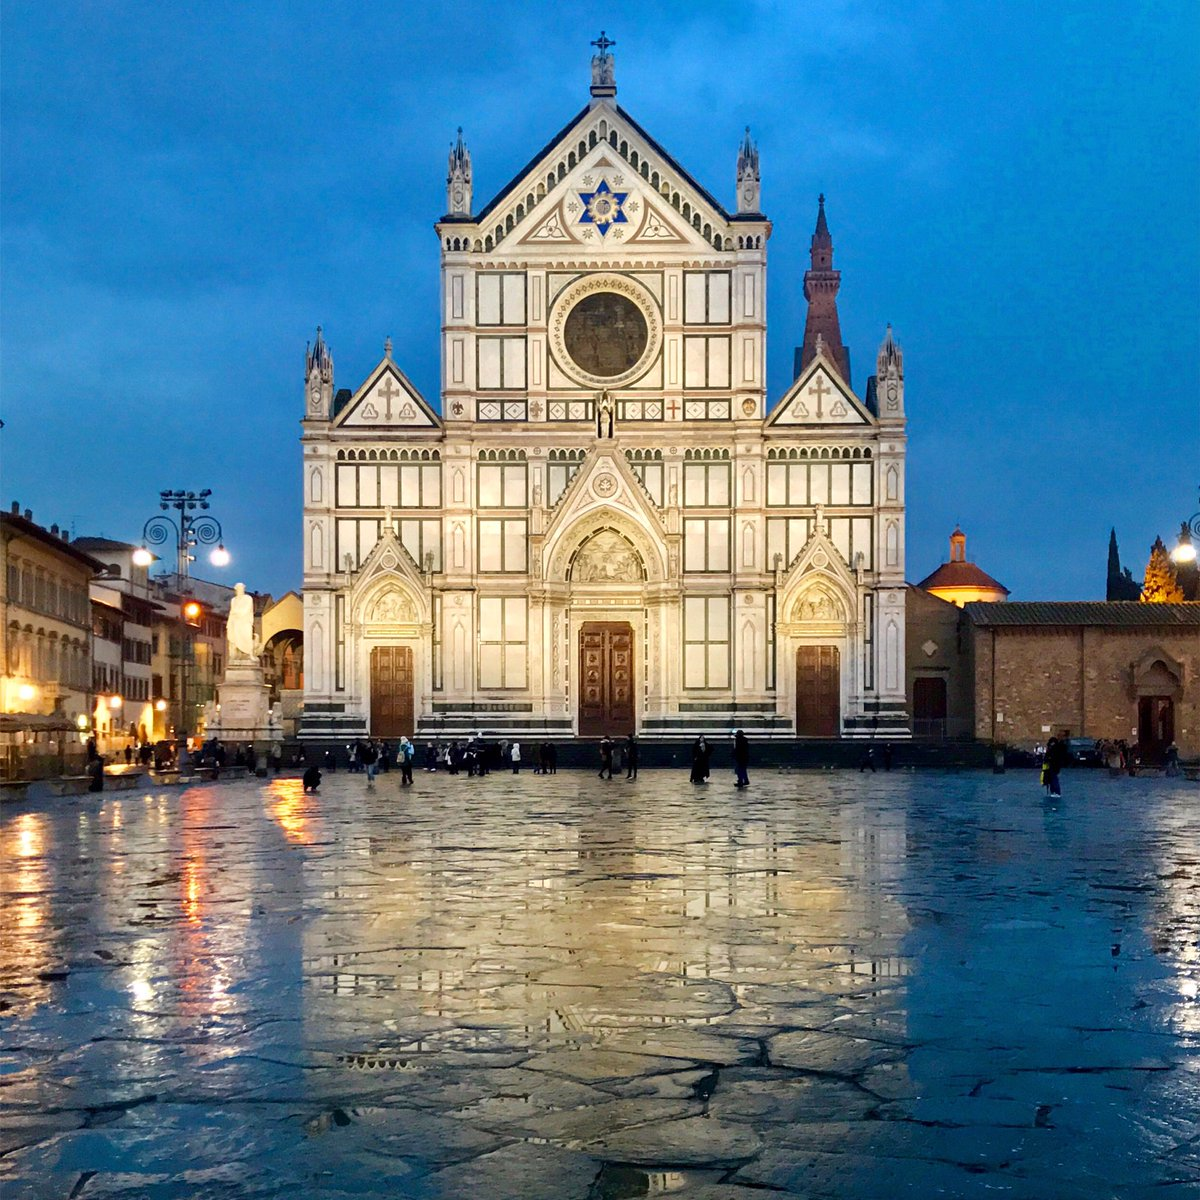 Piazza Santa Croce, Firenze via @melindagallo #travel #art #italy